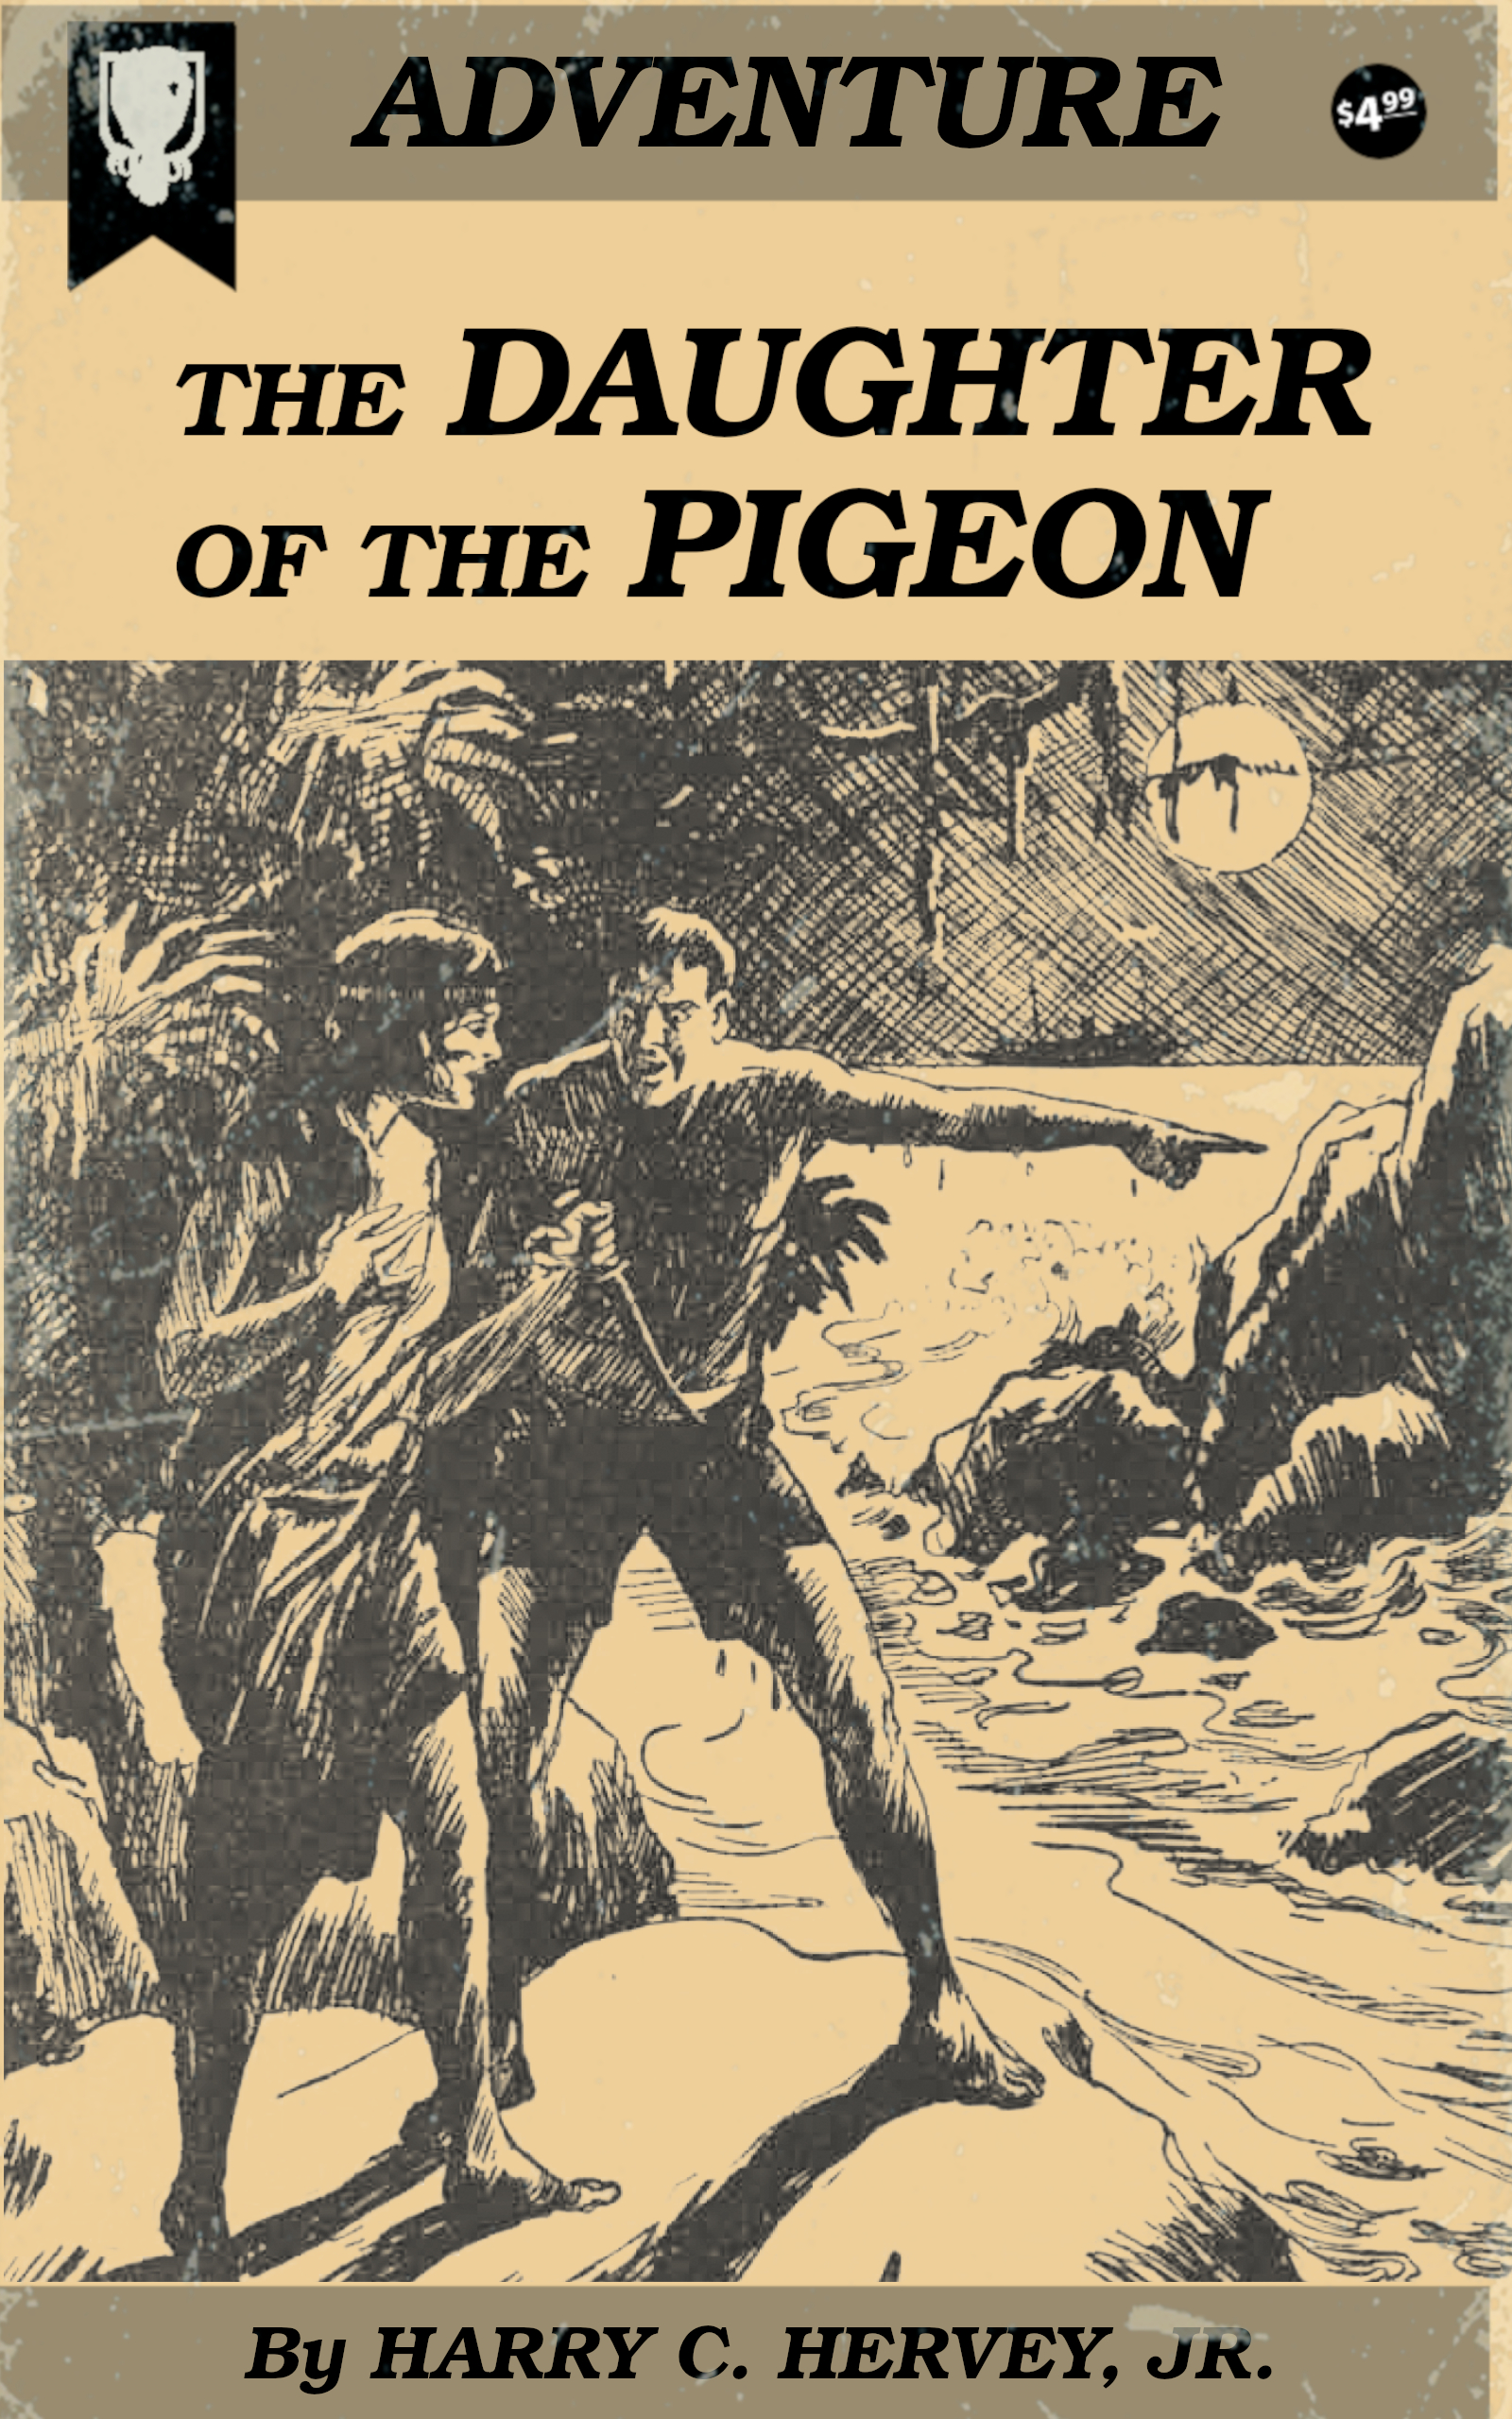 Daughter of the Pigeon by Harry C. Hervey, Jr.